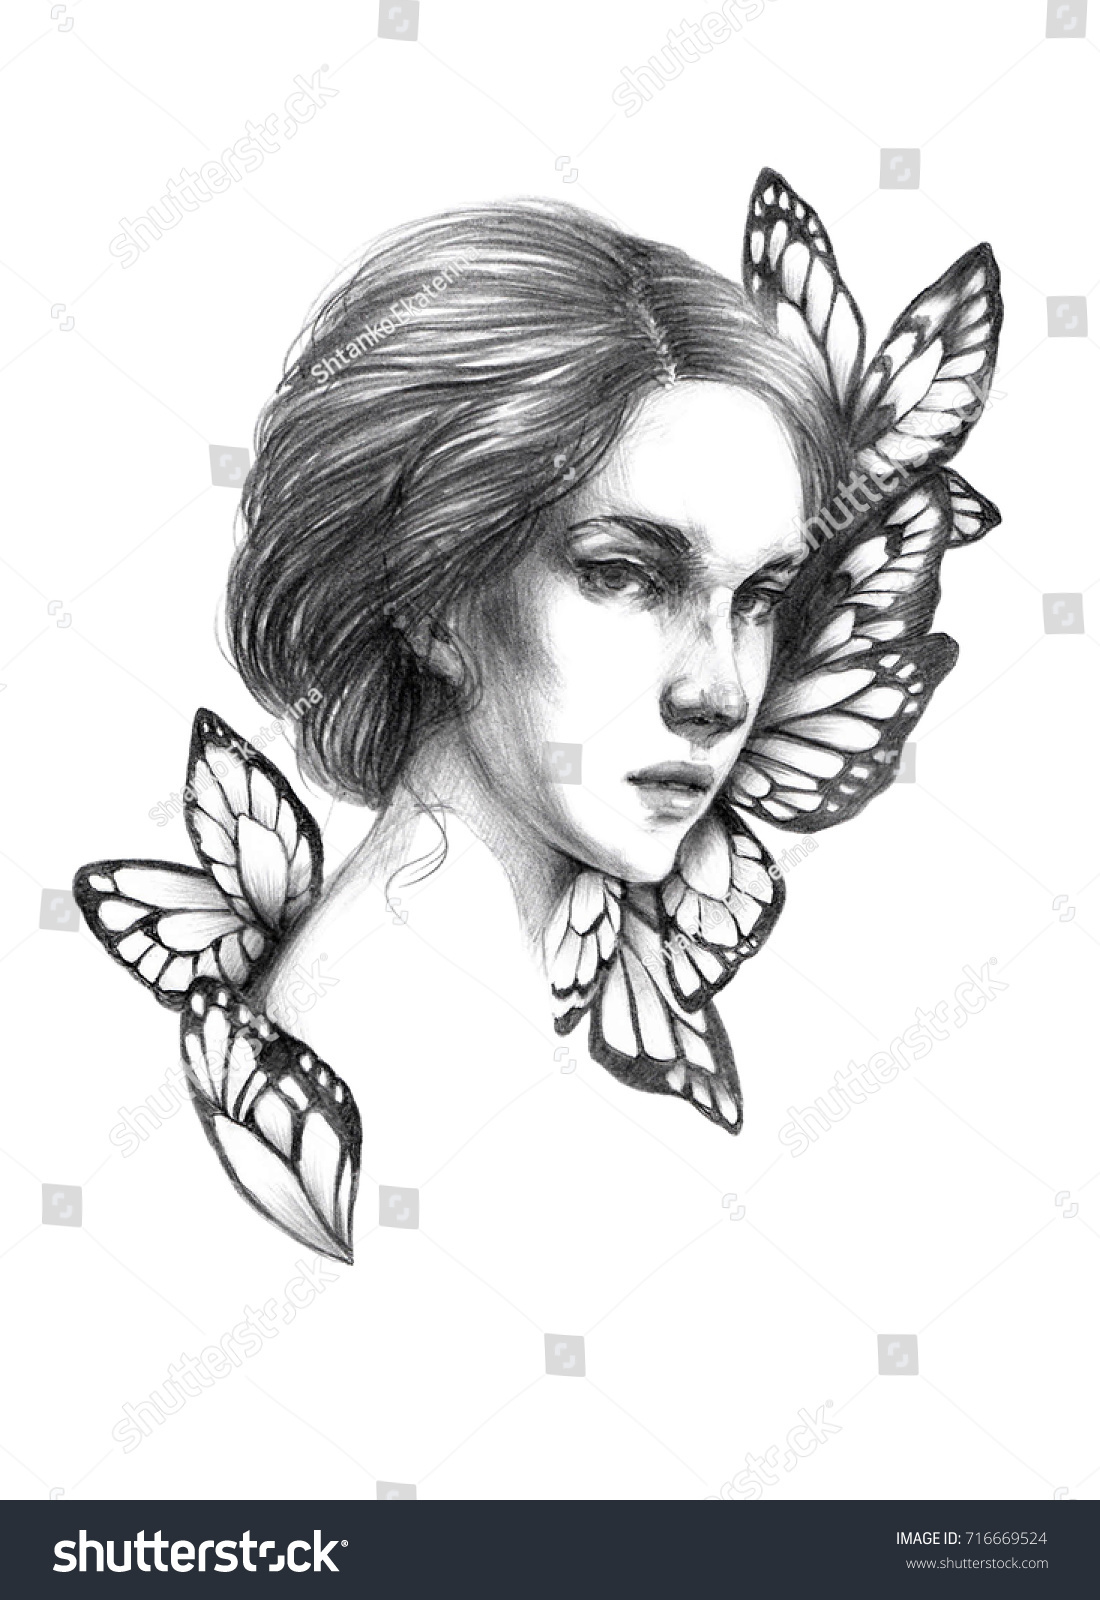 Portrait sketch young beautiful girl drawing pencil mysterious girl with butterfly wings